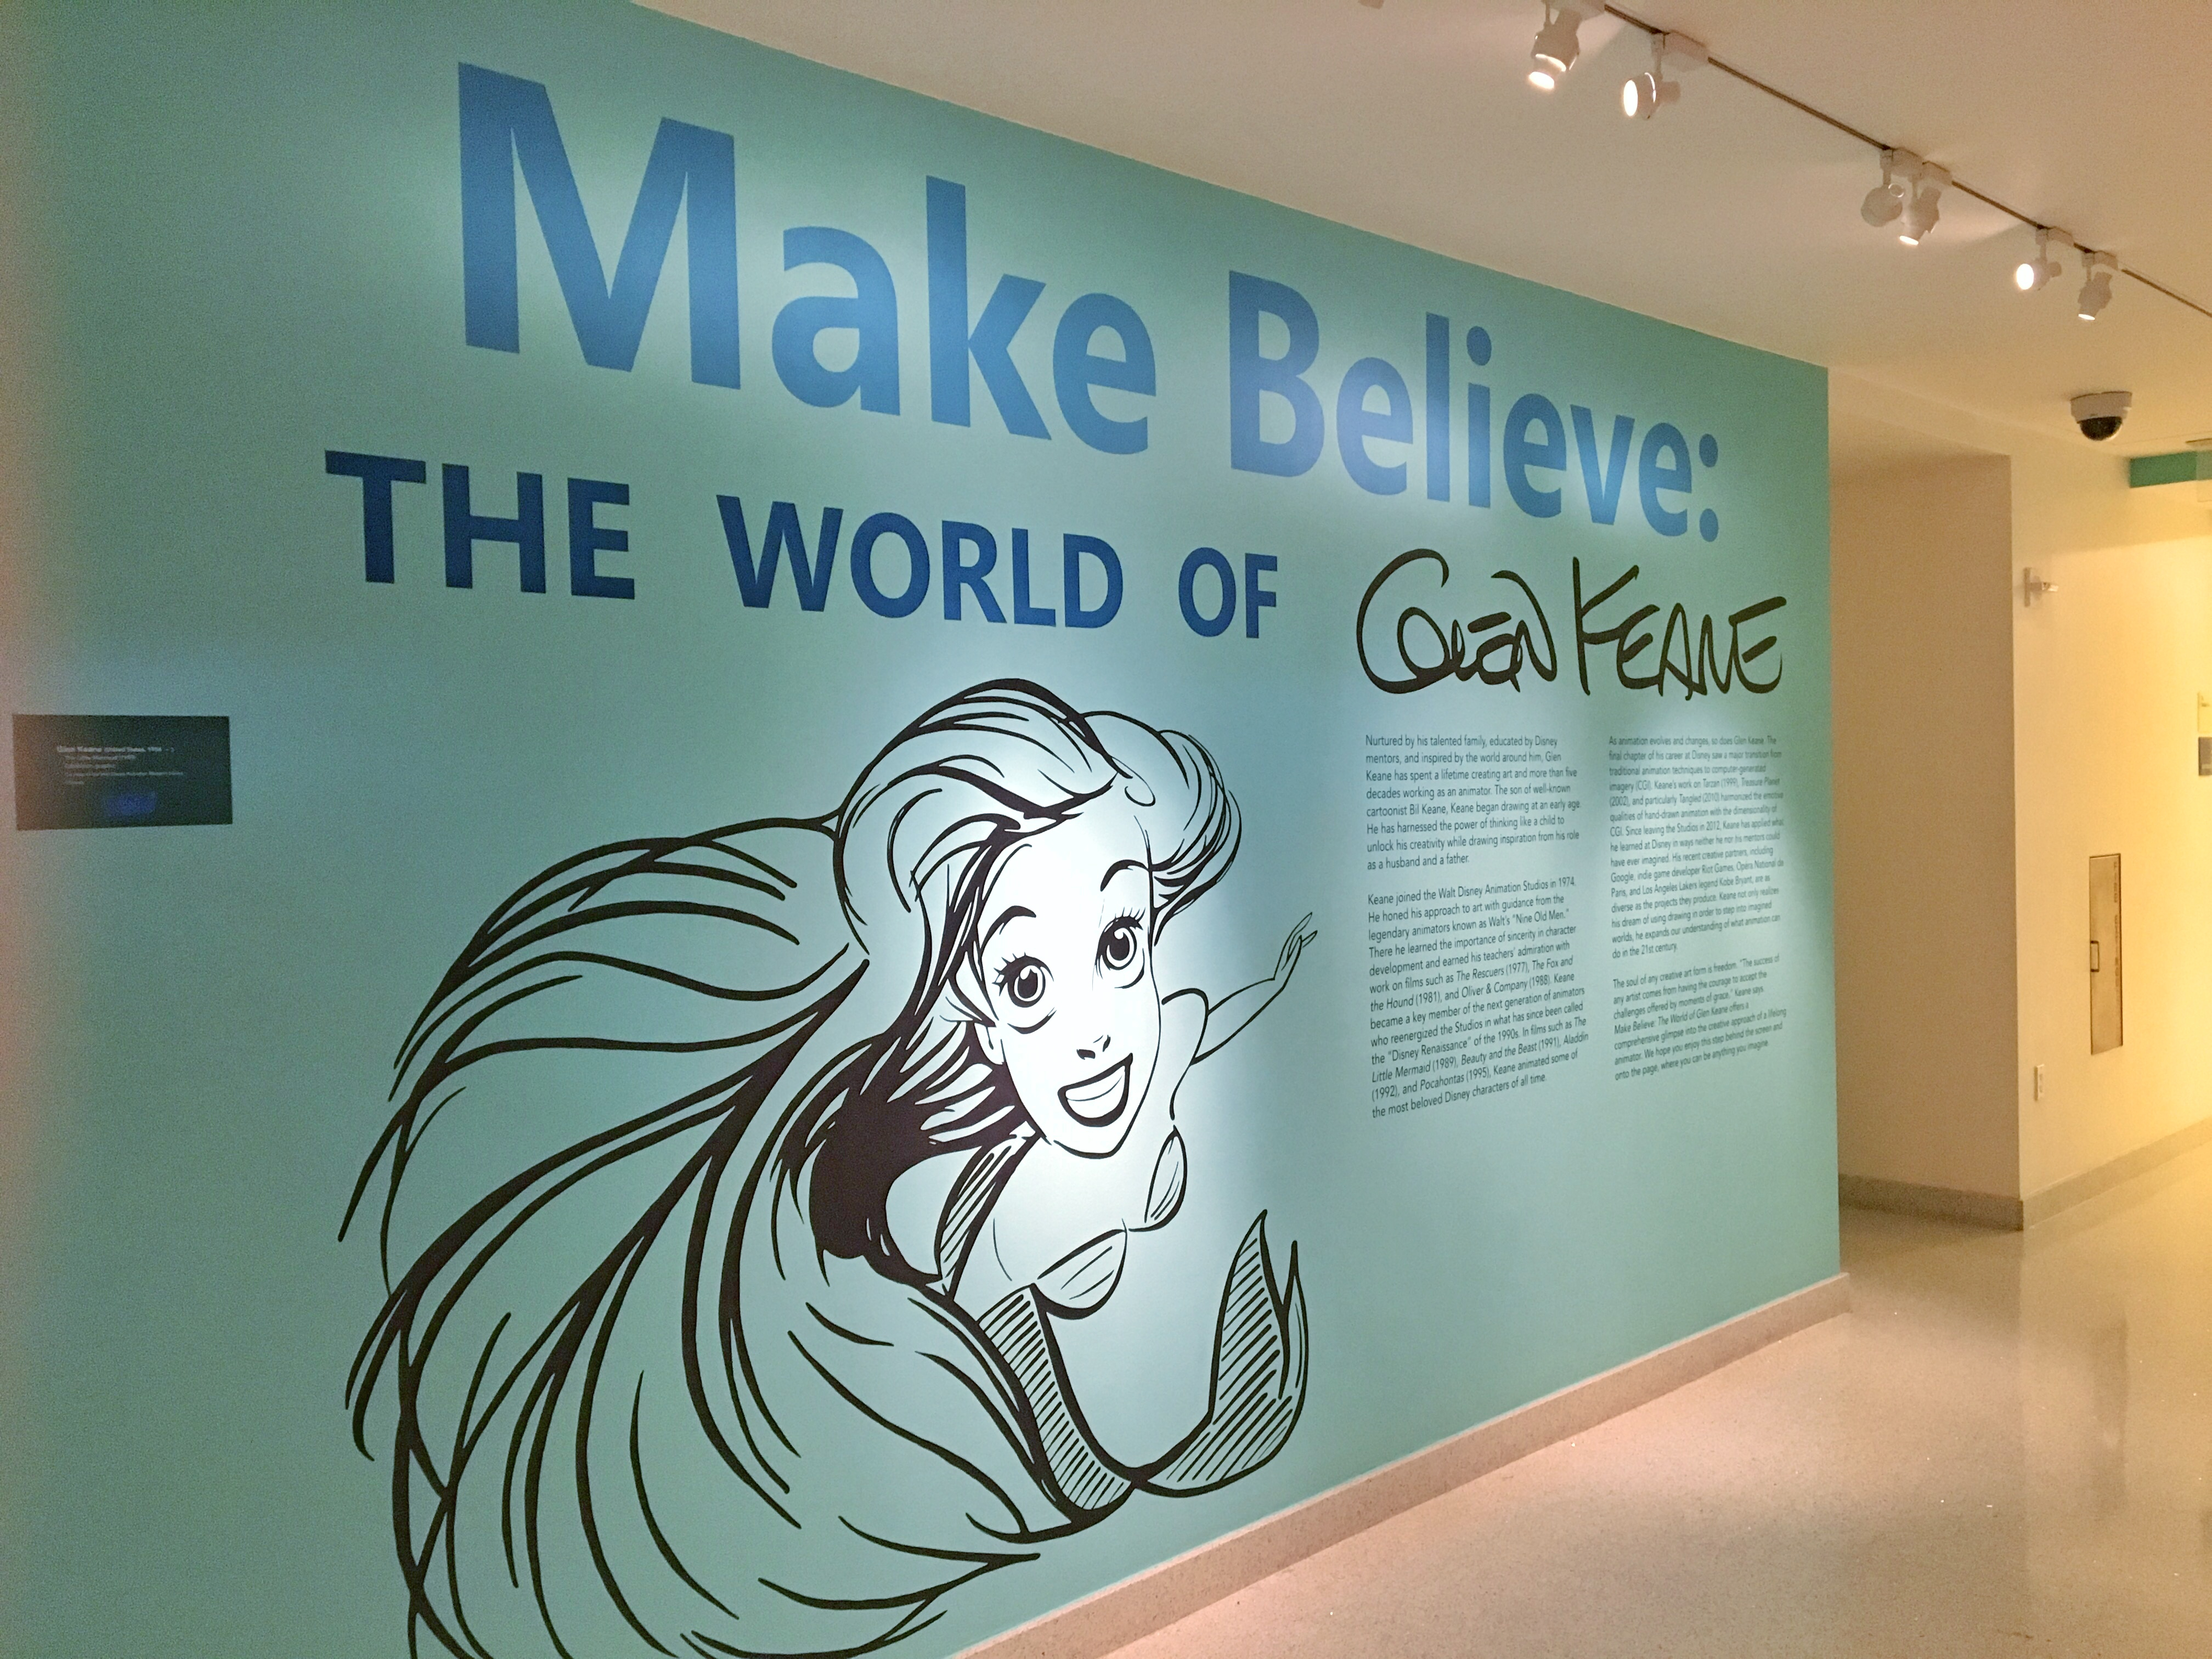 Make Believe: The World of Glen Keane – A New Exhibit at The Walt Disney Family Museum